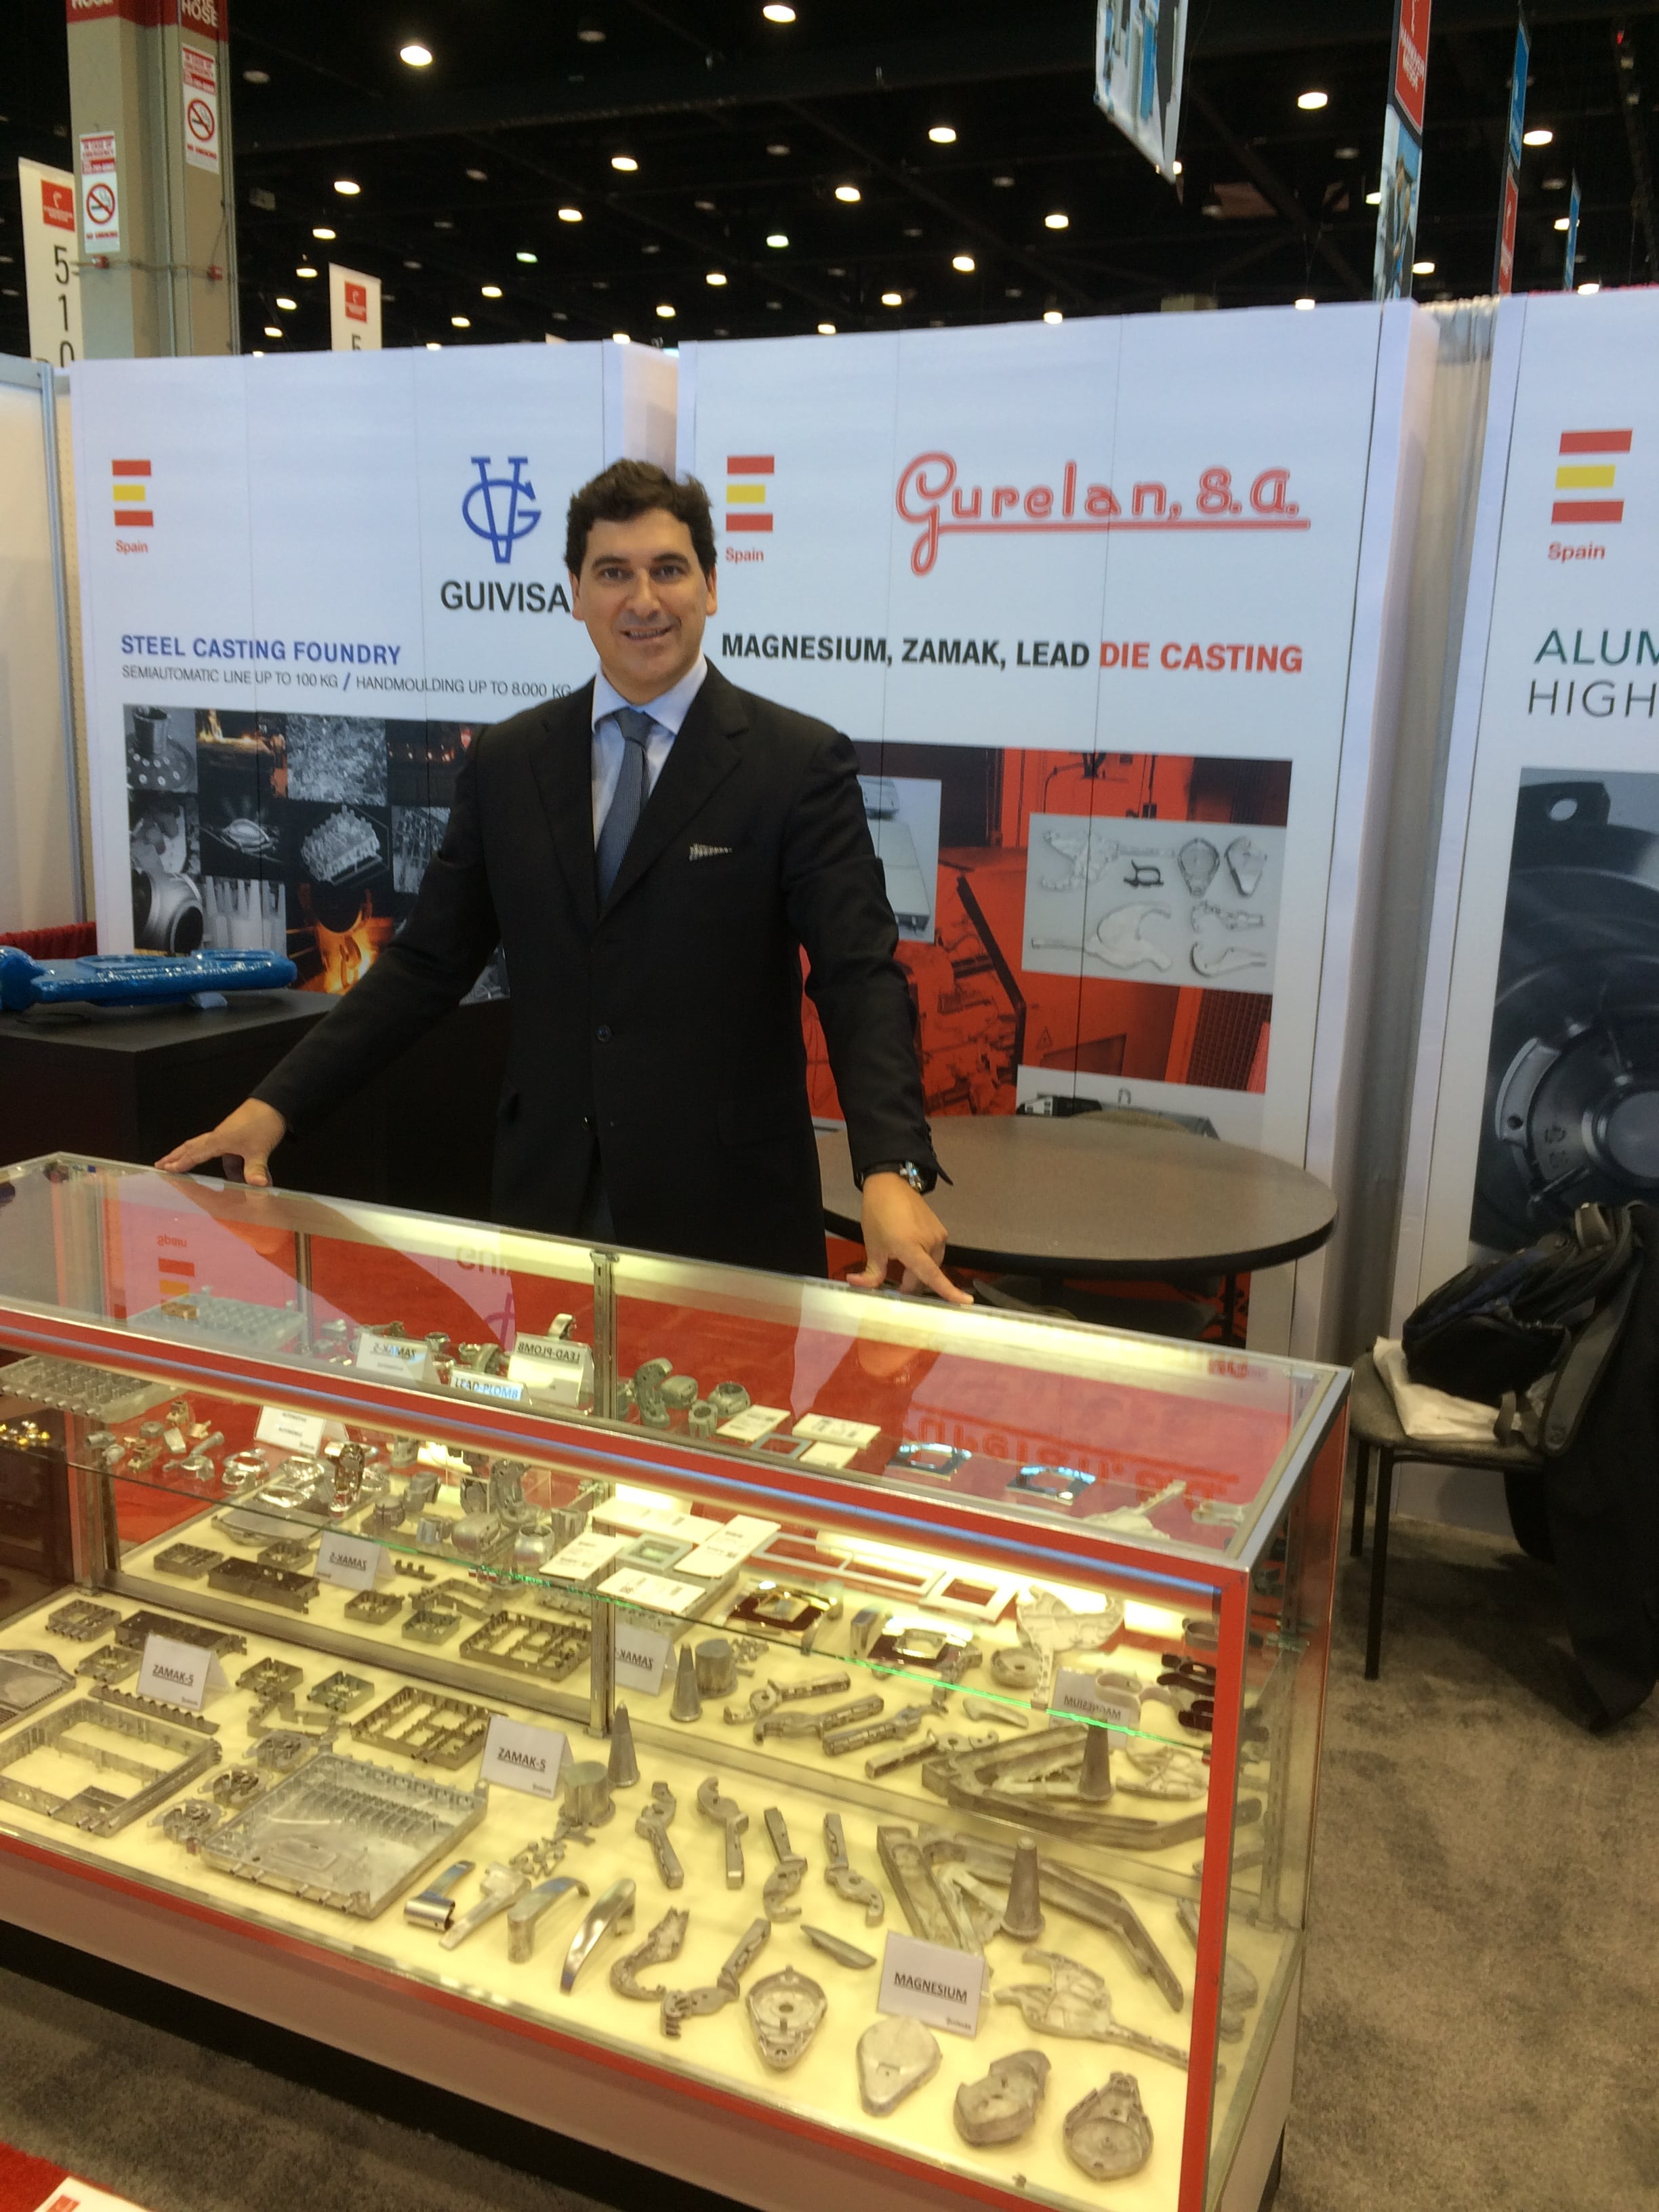 Gurelan IMTS Chicago